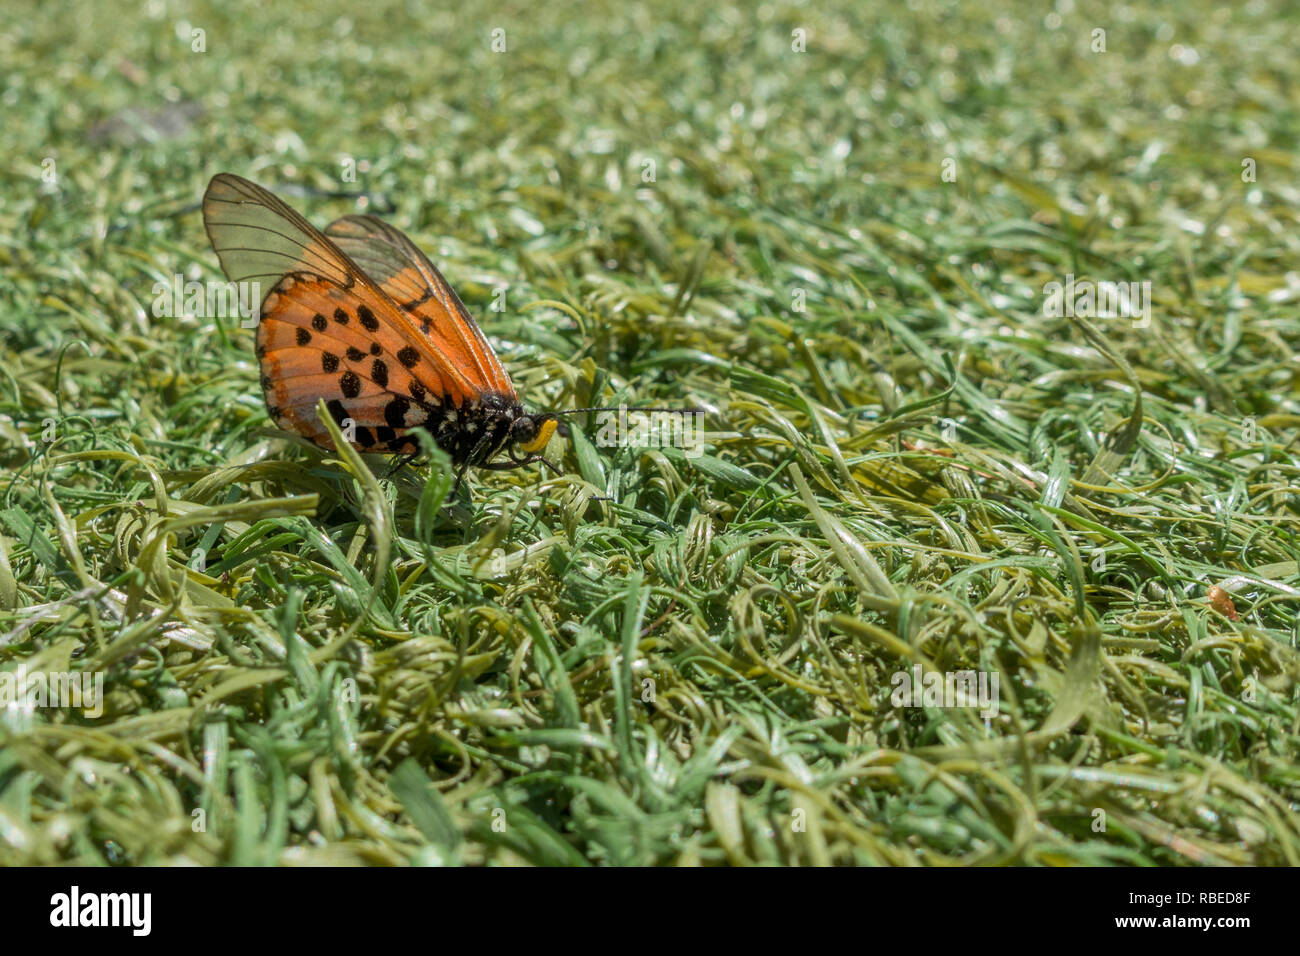 Close up of a Garden Acraea Butterfly, Acraea horta, Nymphalidae on the ground in grass. Cape Peninsula, South Africa - Stock Image